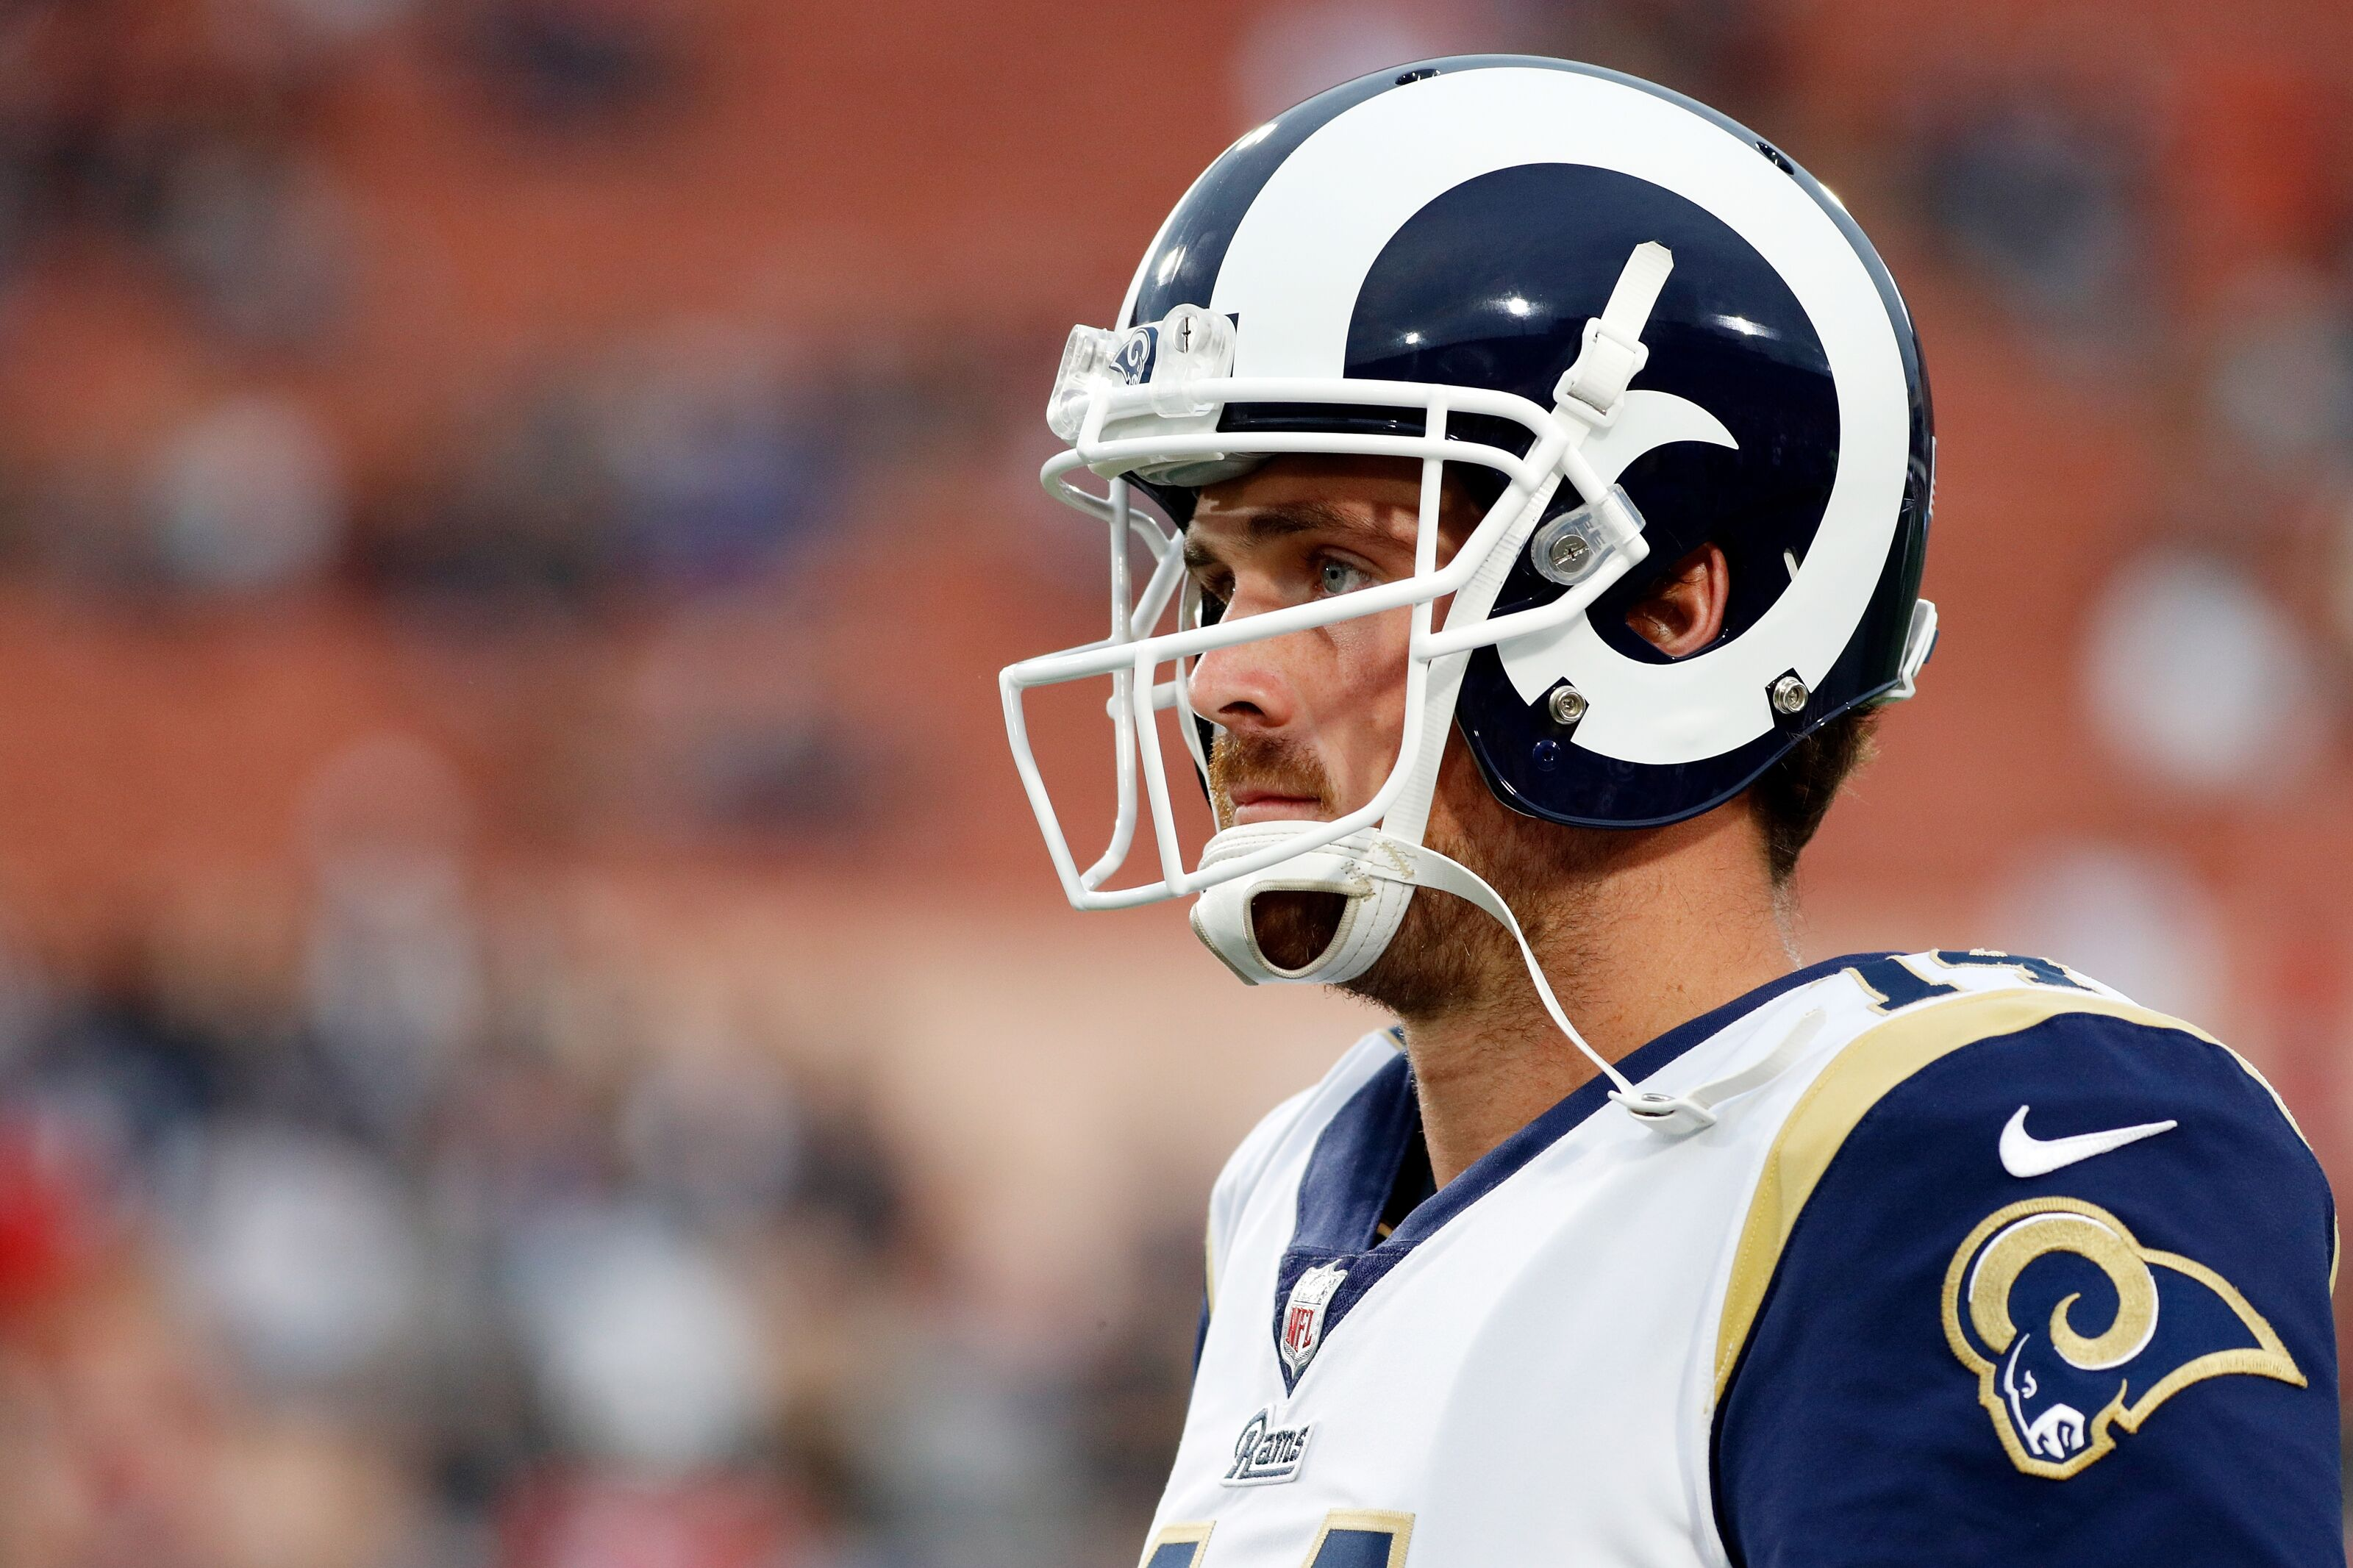 Report: Vikings to meet with former Rams quarterback this week